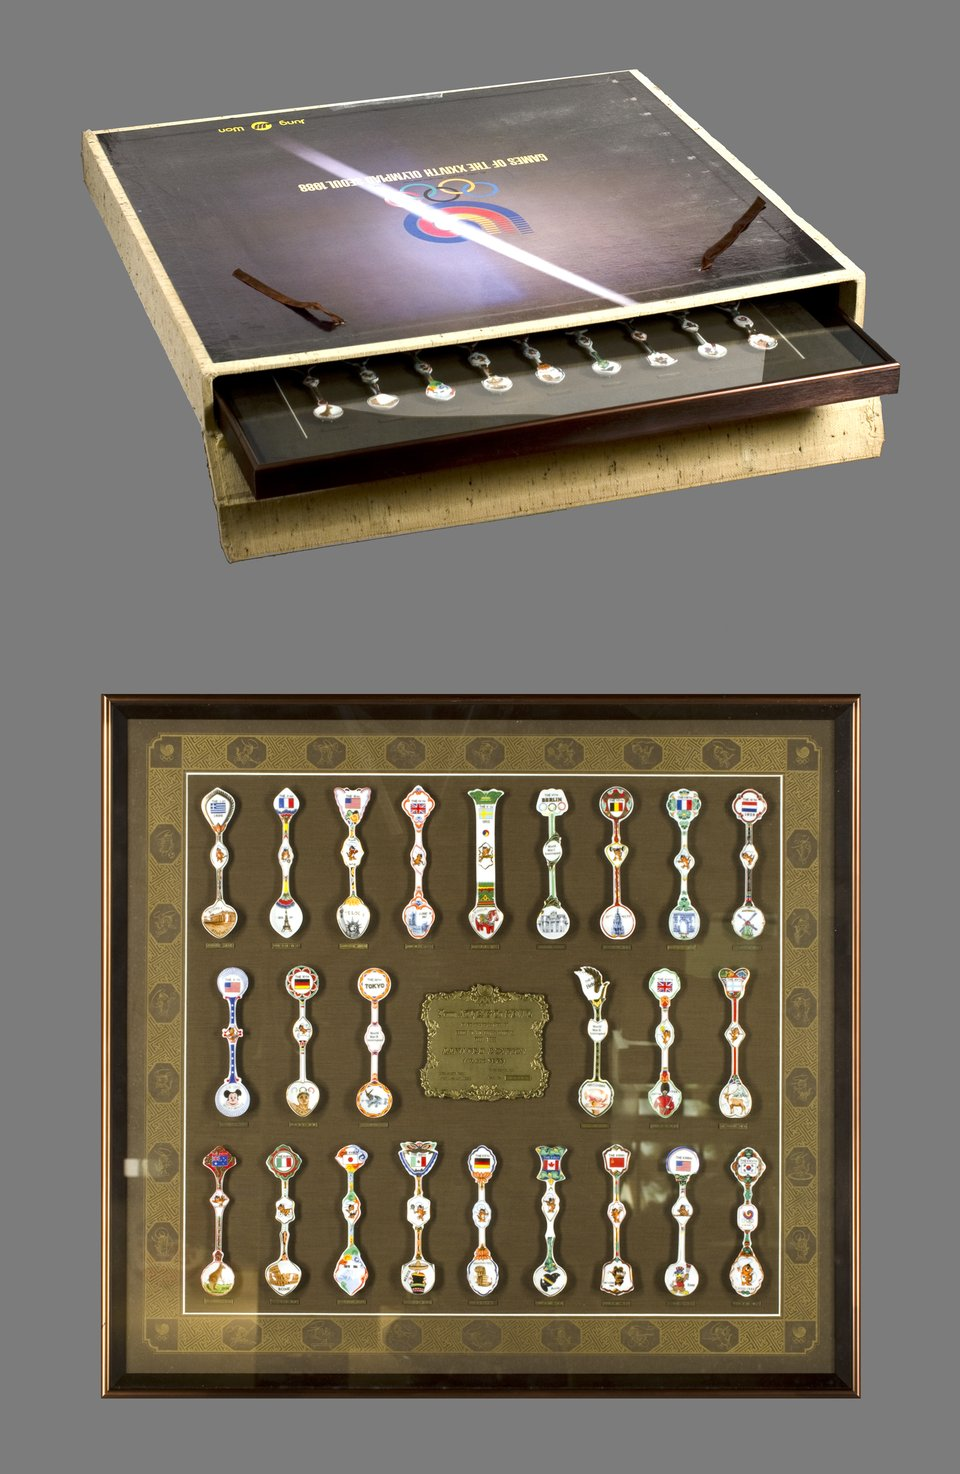 Games of the XXIVth Olympiad - Seoul 1988 (24 spoons) – Vintage poster –  ANONYME – 1988